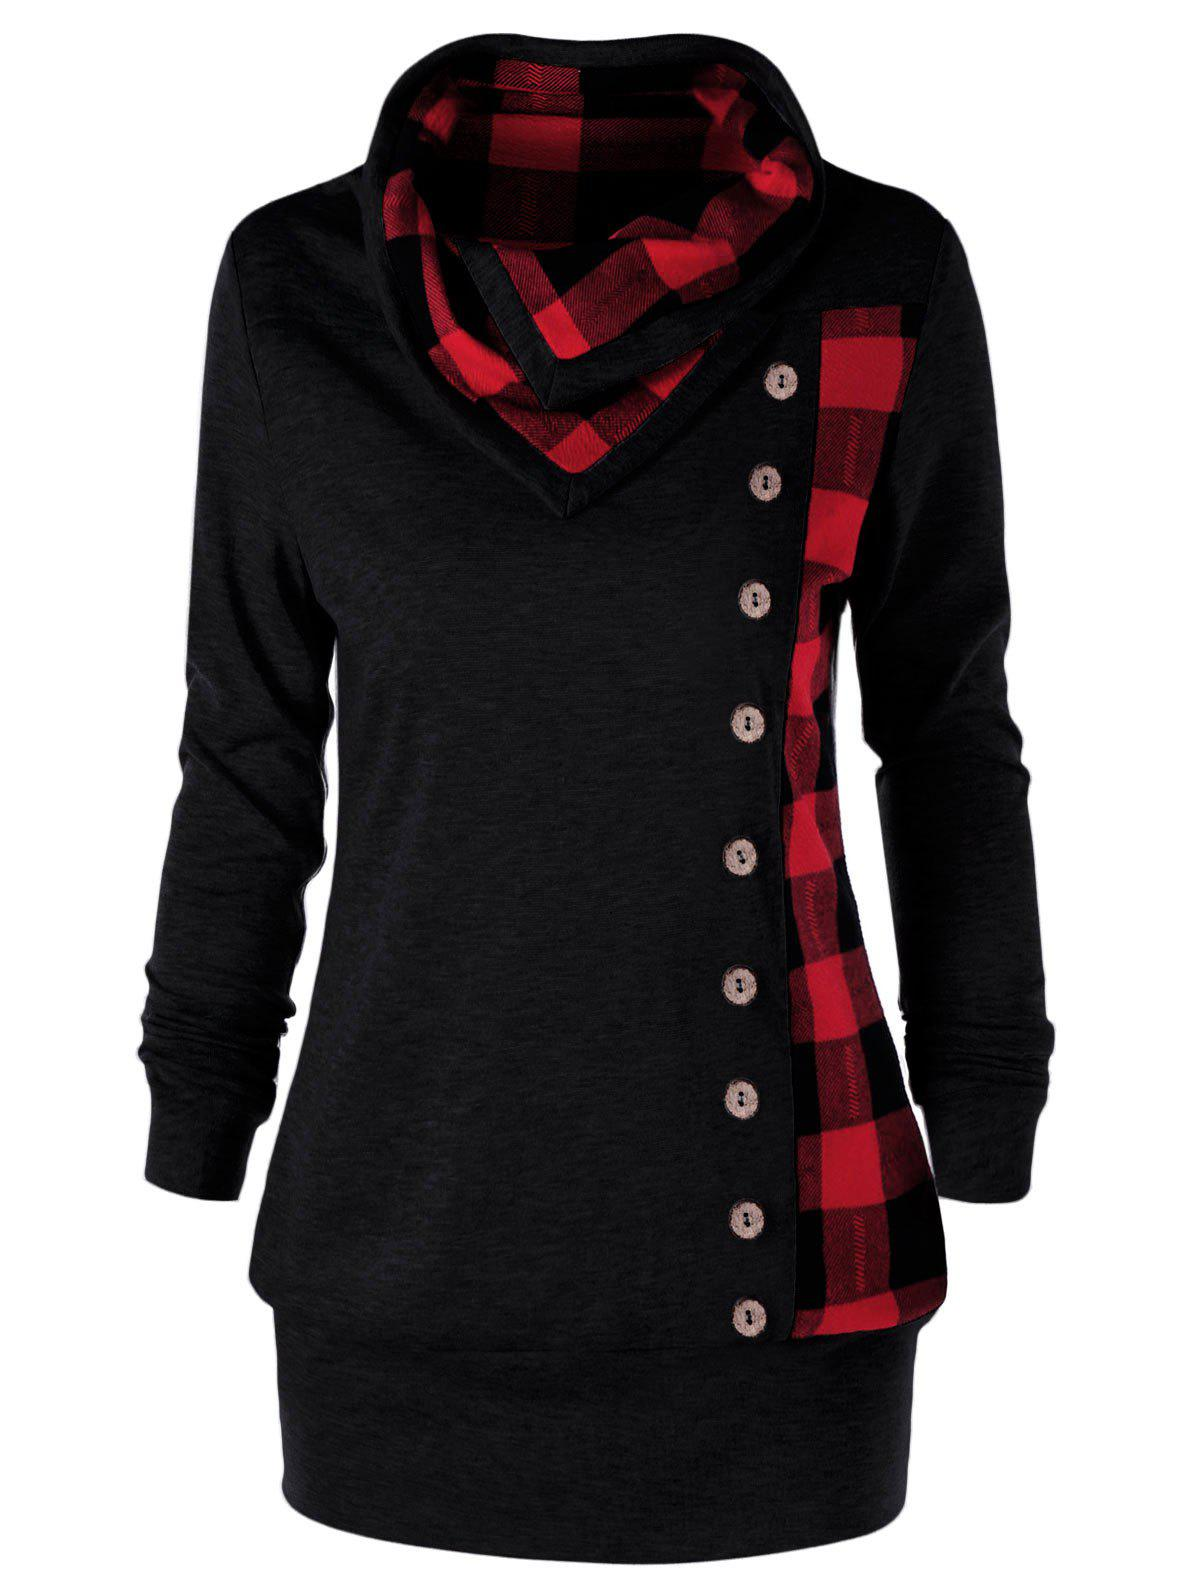 Plus Size Plaid Cowl Neck Tunic Sweatshirt - RED/BLACK 2XL